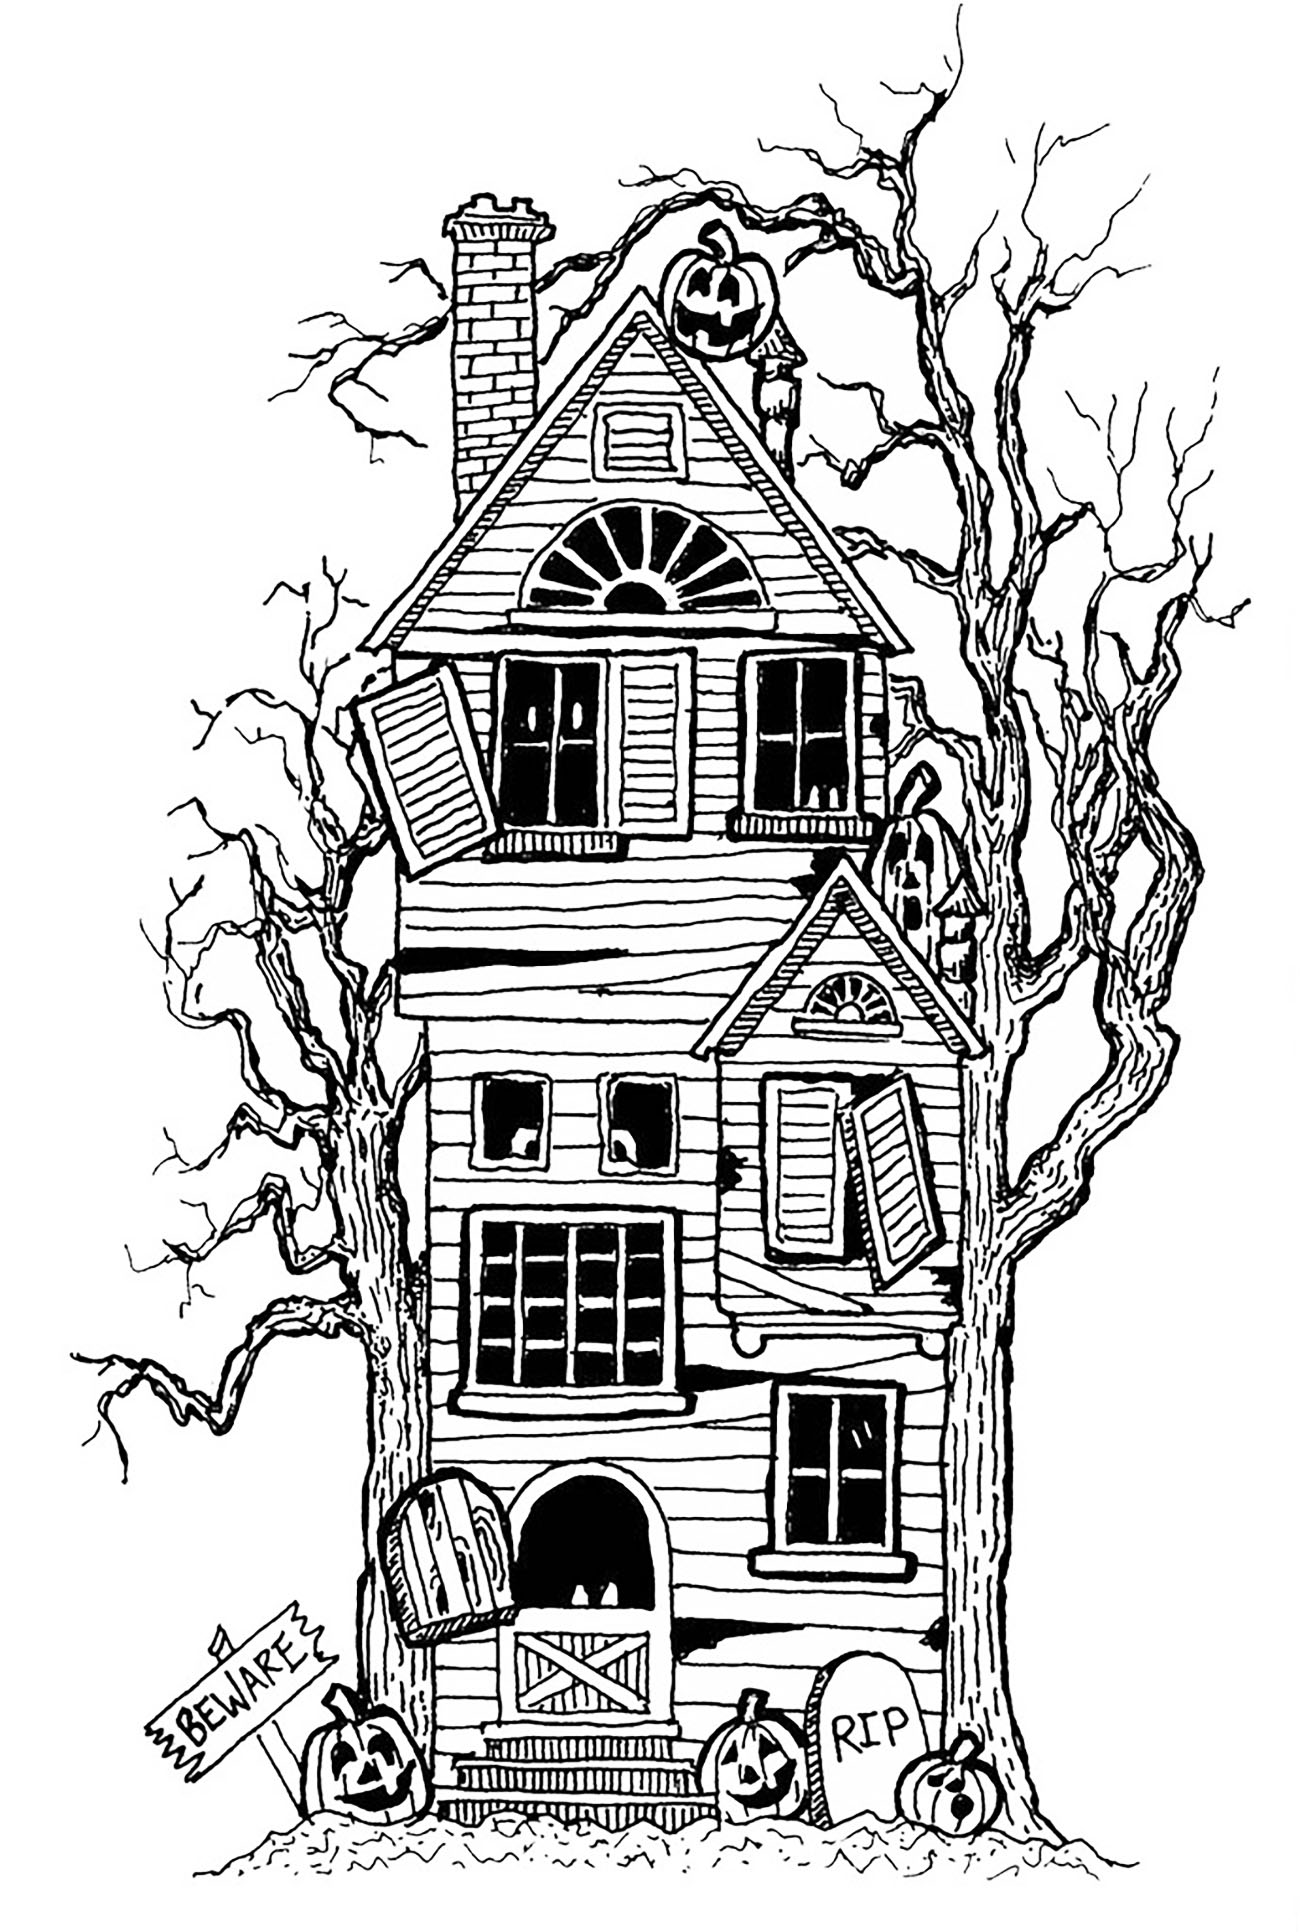 haunted house printable coloring pages halloween big haunted house halloween adult coloring pages printable coloring haunted house pages